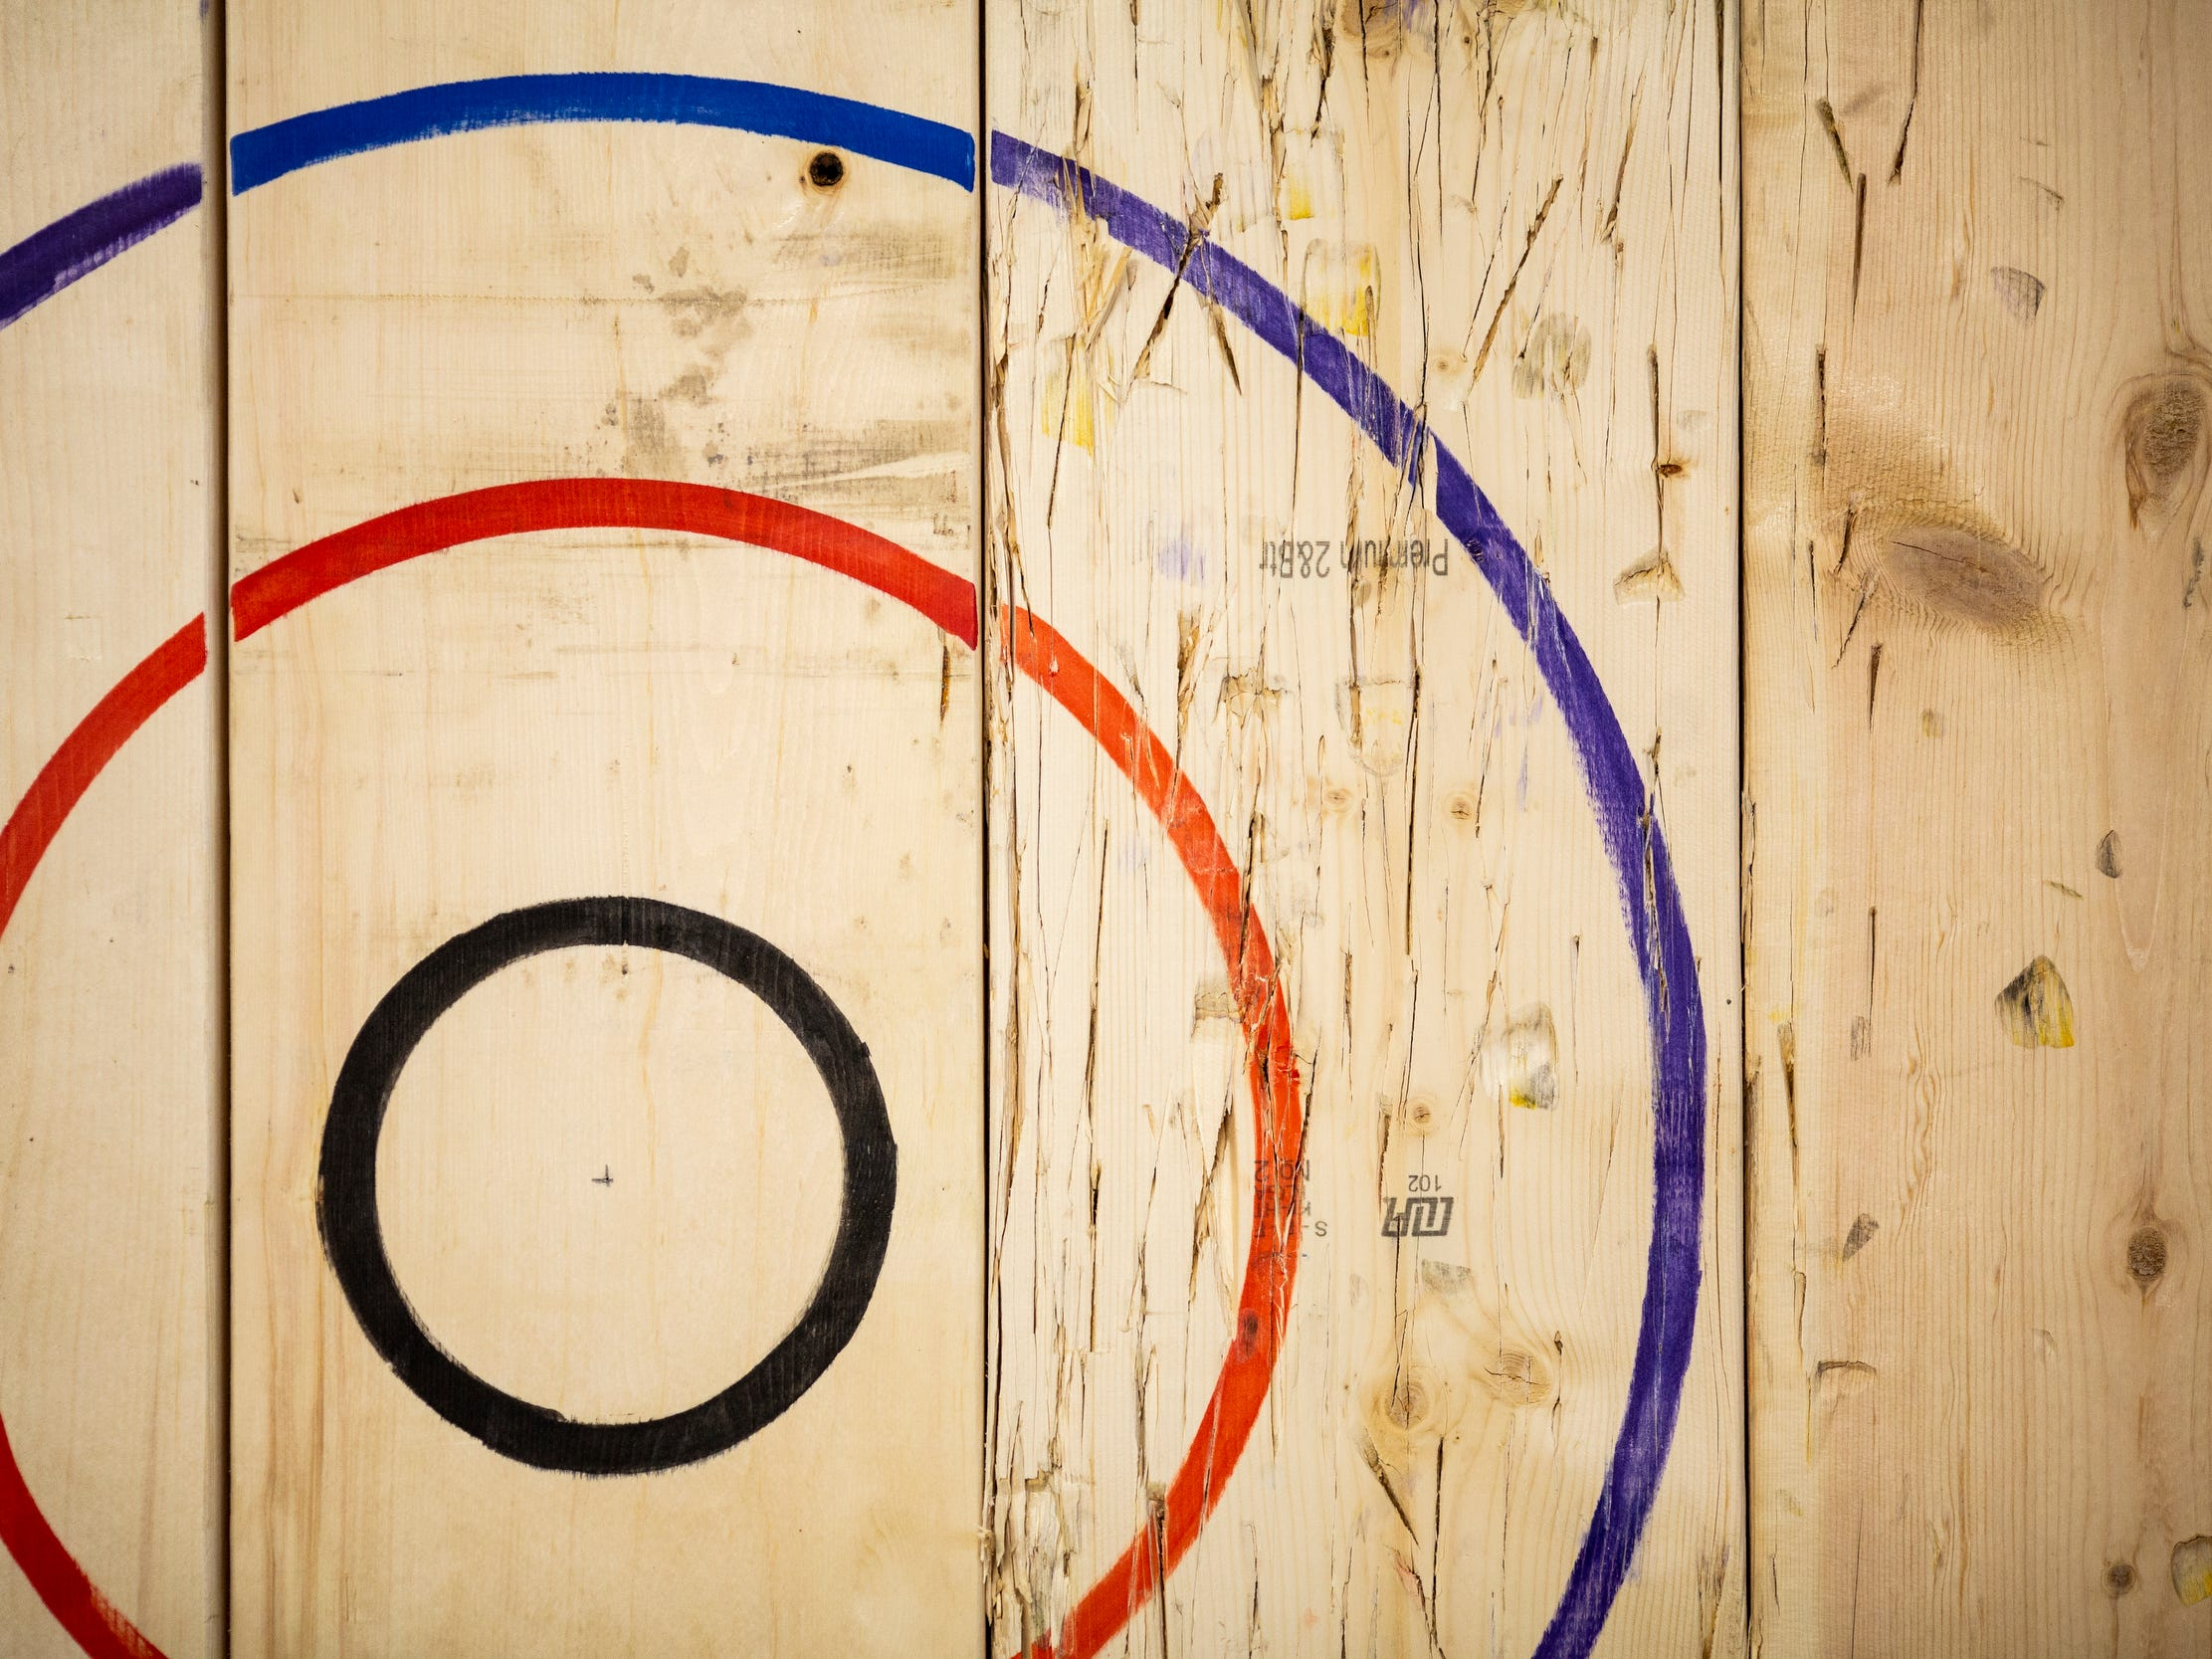 The National Axe Throwing Federation targets at Urban Axes Cincinnati are regularly replaced.